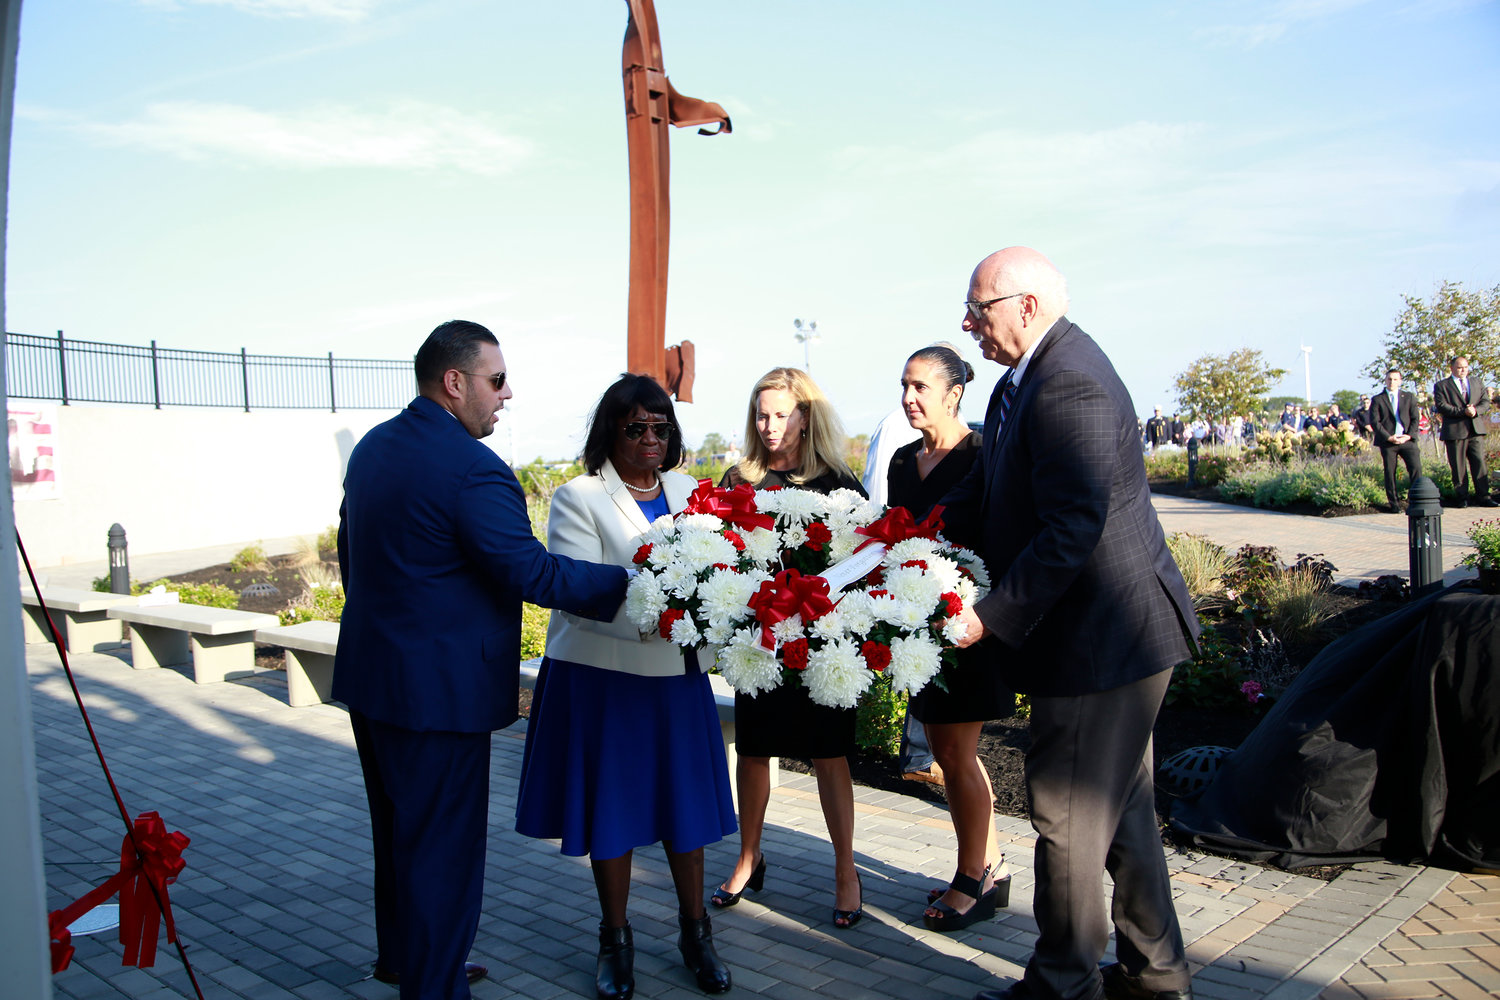 Town Council members Anthony D'Esposito, far left, Dorothy  Goosby, second from left, and Dennis Dunne, far right, joined Town Supervisor Laura Gillen, center, and Town Clerk Sylvia Cabana, second from right, to place a special wreath next to the Memorial Wall at Point Lookout Town Park.